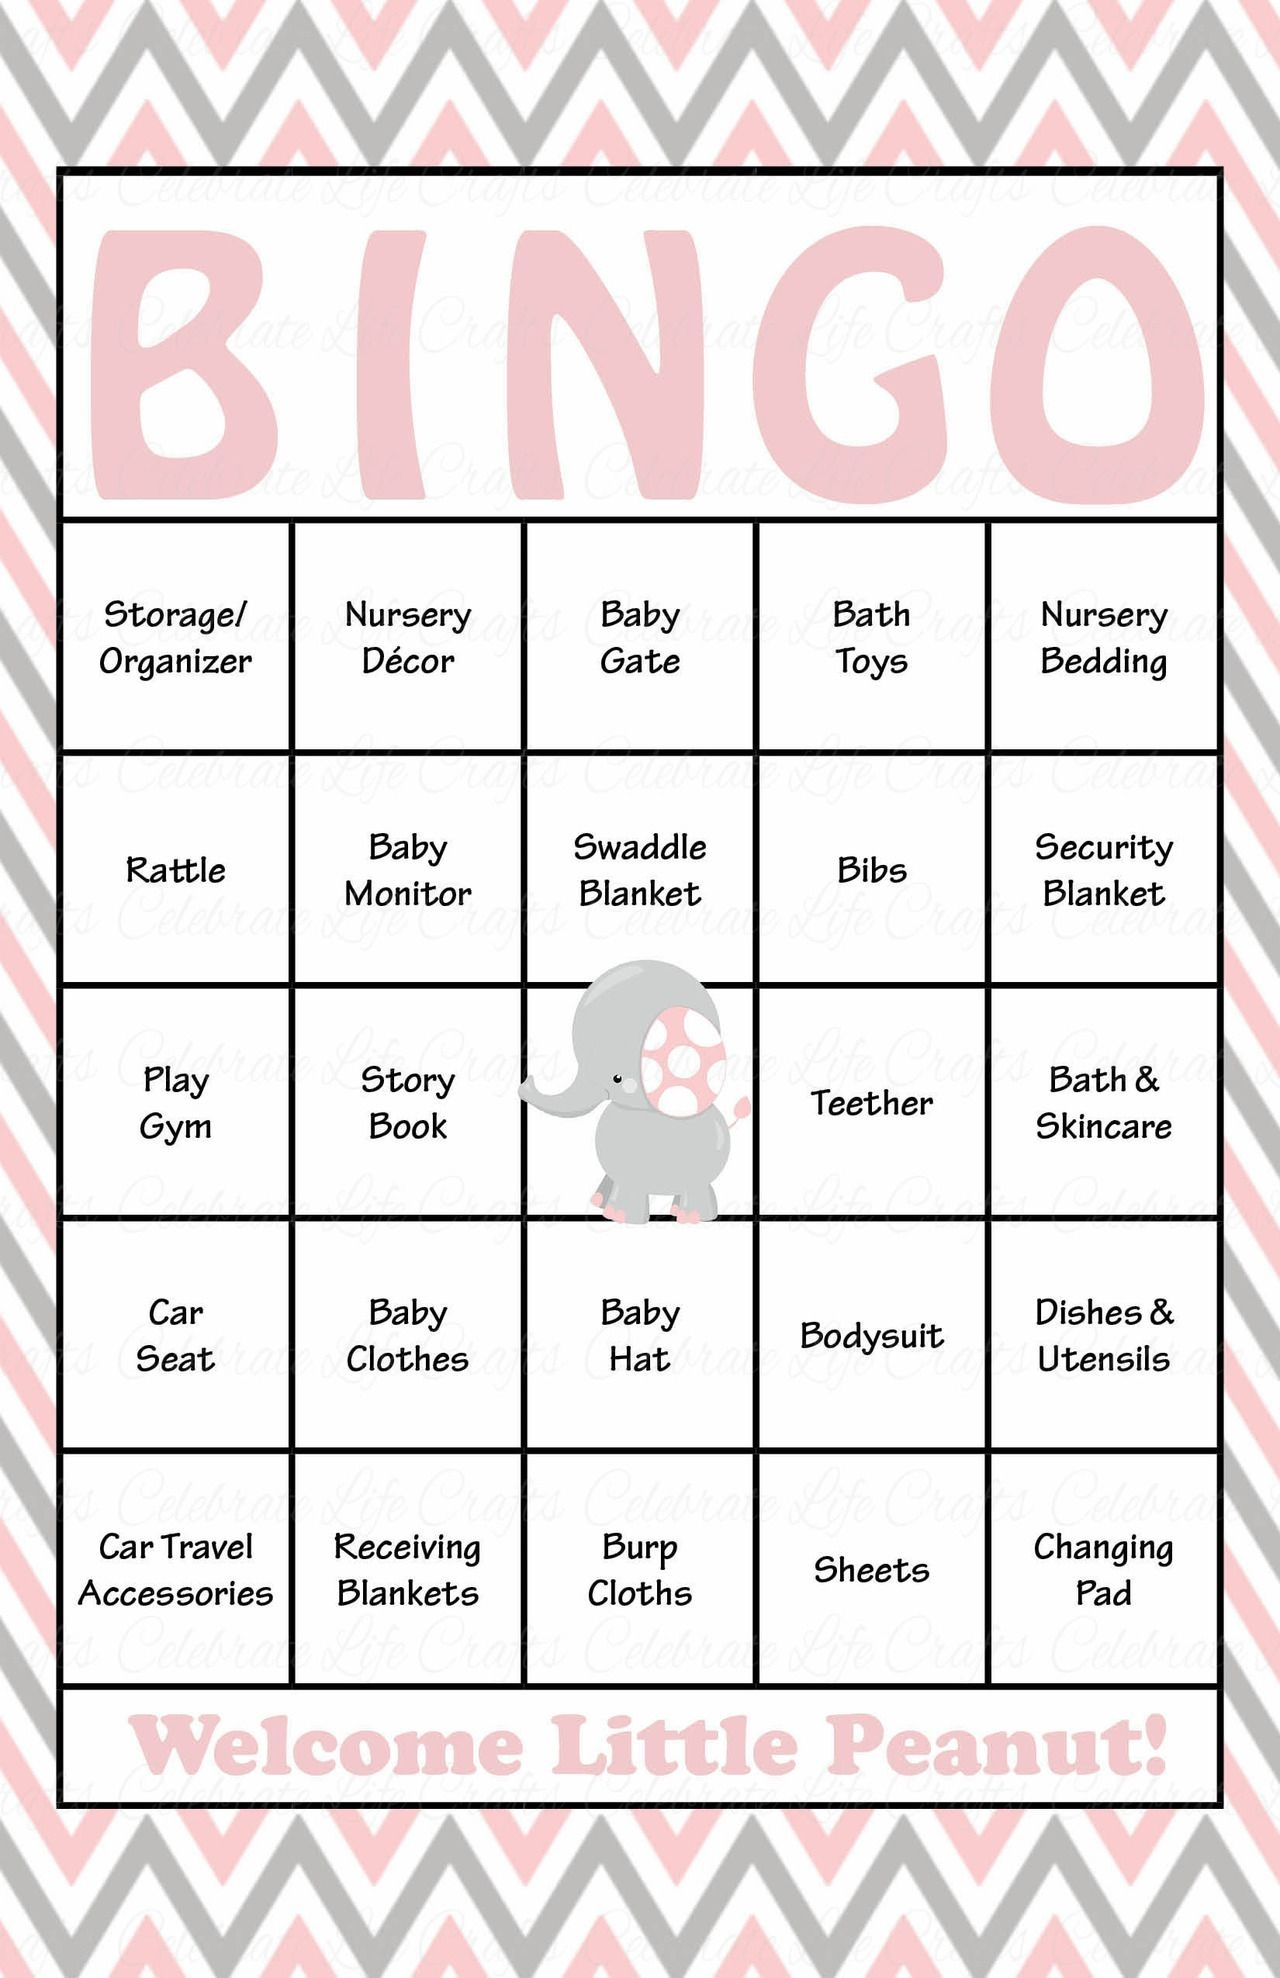 Elephant Baby Shower - Baby Bingo Cards - Printable Download - Baby - 50 Free Printable Baby Bingo Cards